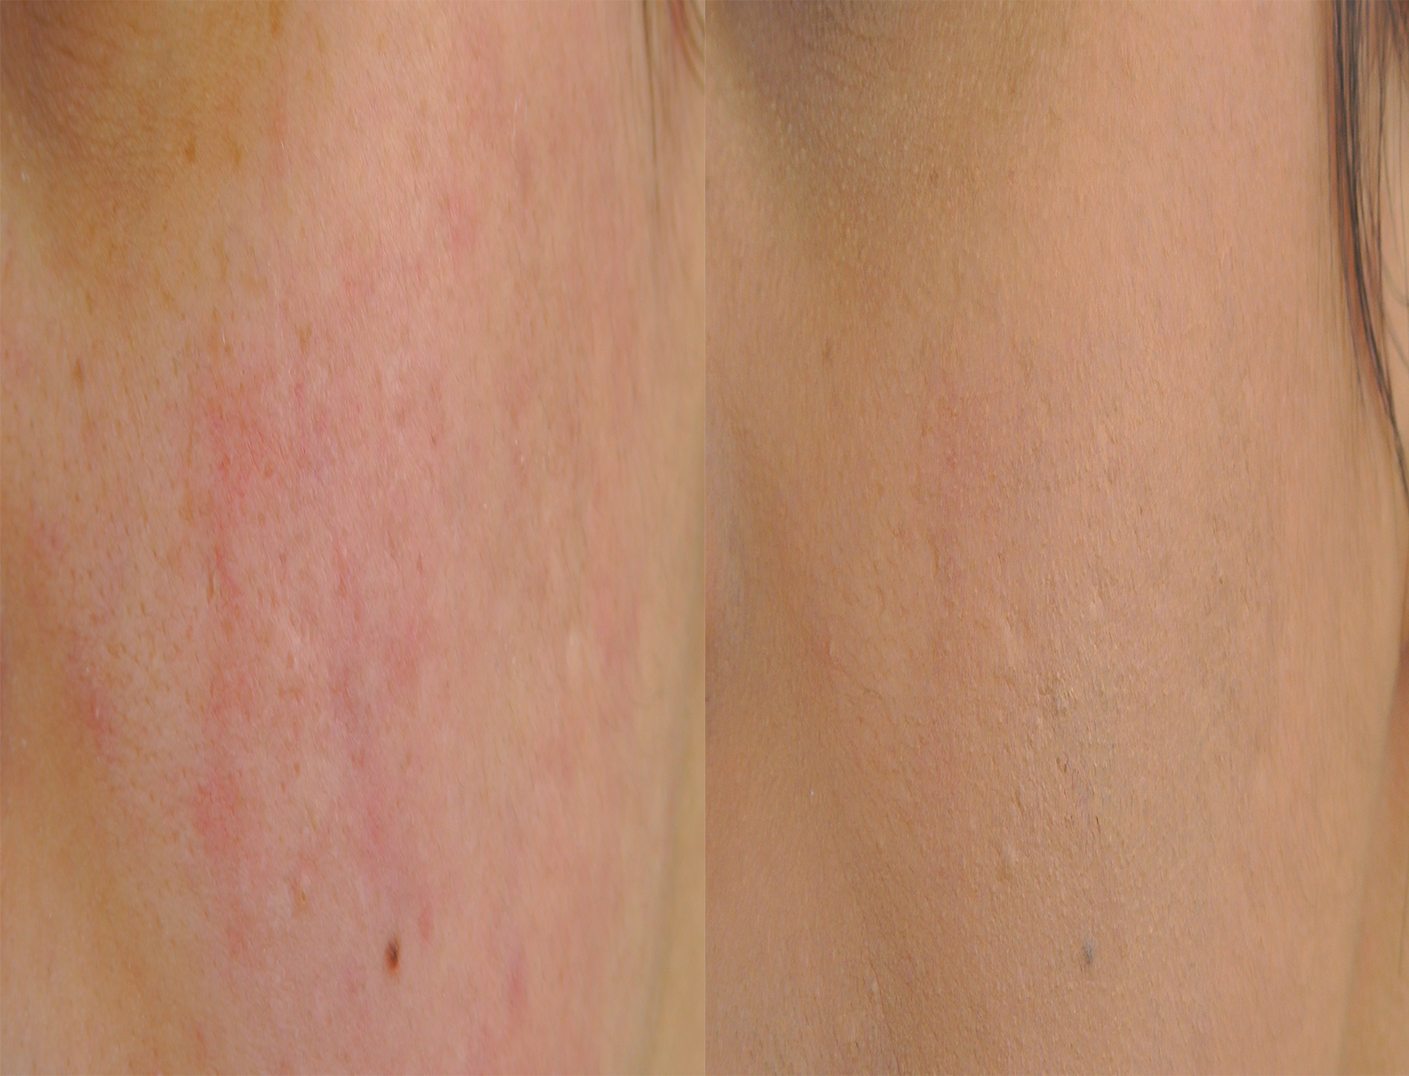 Eliminer acne et cicatrices